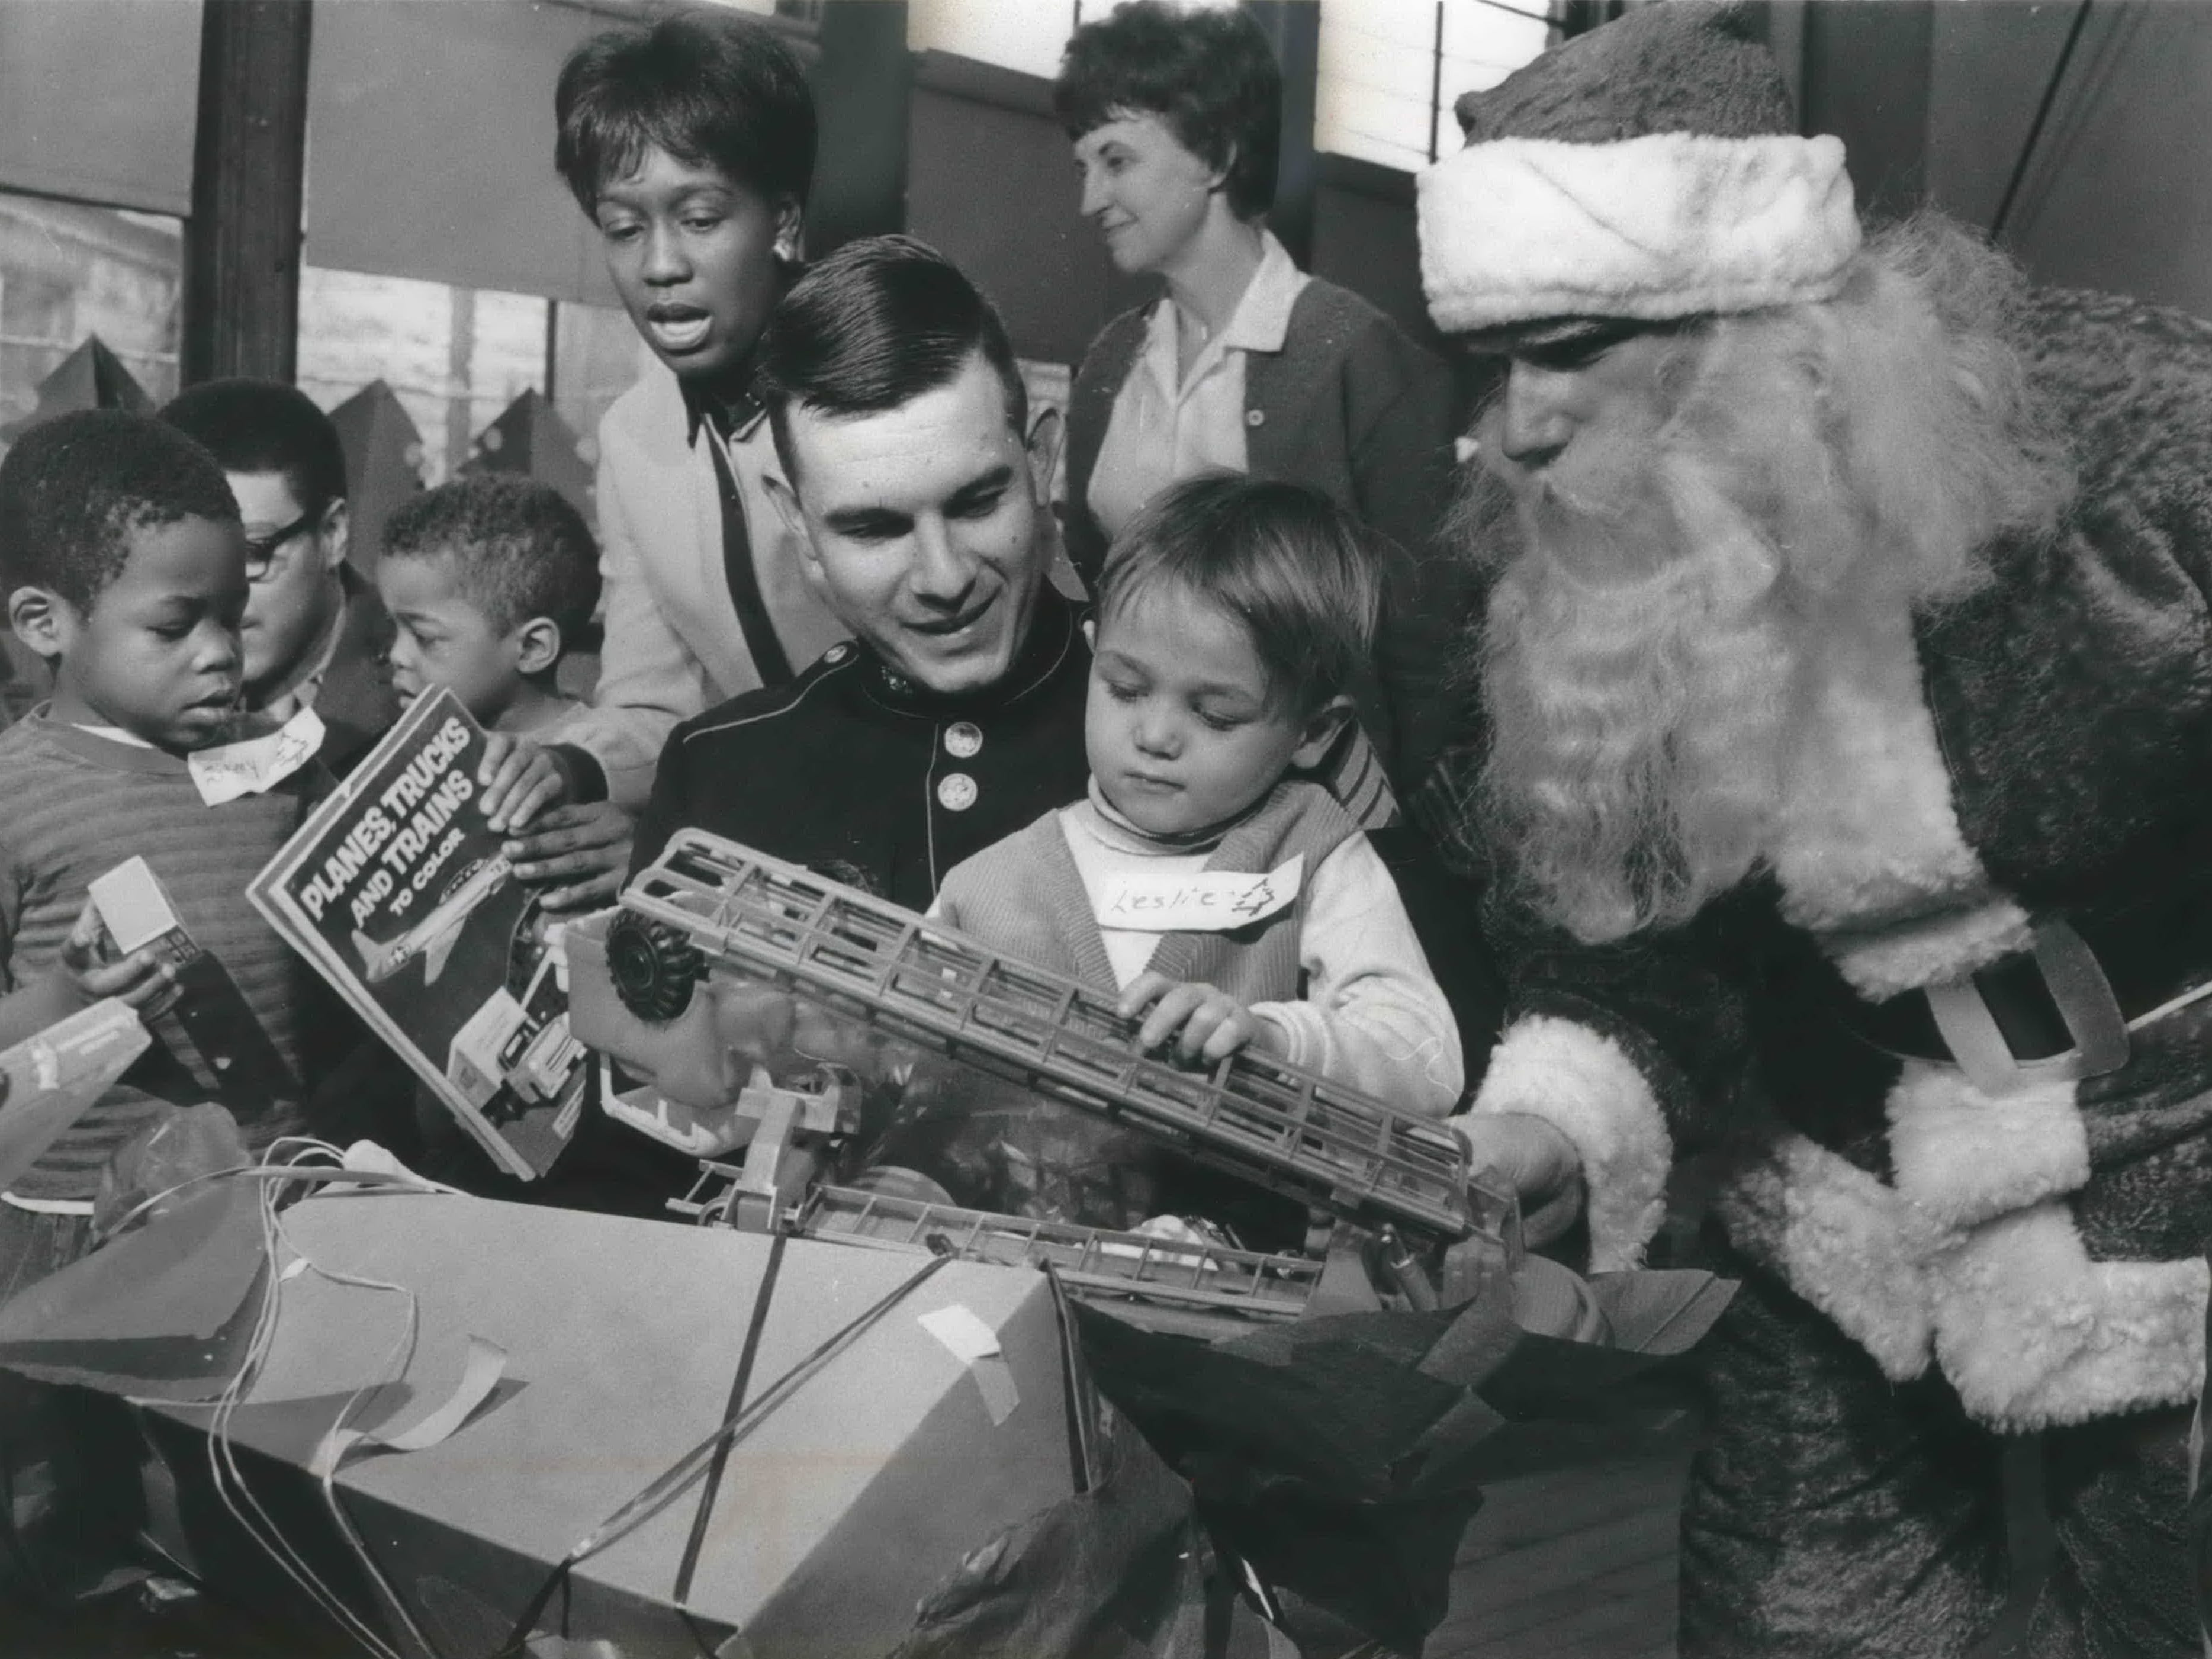 Youngsters in the Head Start program at St. Michael School, 2433 W. Cherry St., are visited by Santa and receive some Christmas presents Dec. 19, 1968, courtesy of the 96th Rifle Company of the Marine Corps Reserve. Two members of the reserve, Sgt. John Seitz and Lance Cpl. Dennis Jarentowski (dressed as Santa), helped the children open their presents. This photo was published in the Dec. 20, 1968, Milwaukee Journal.